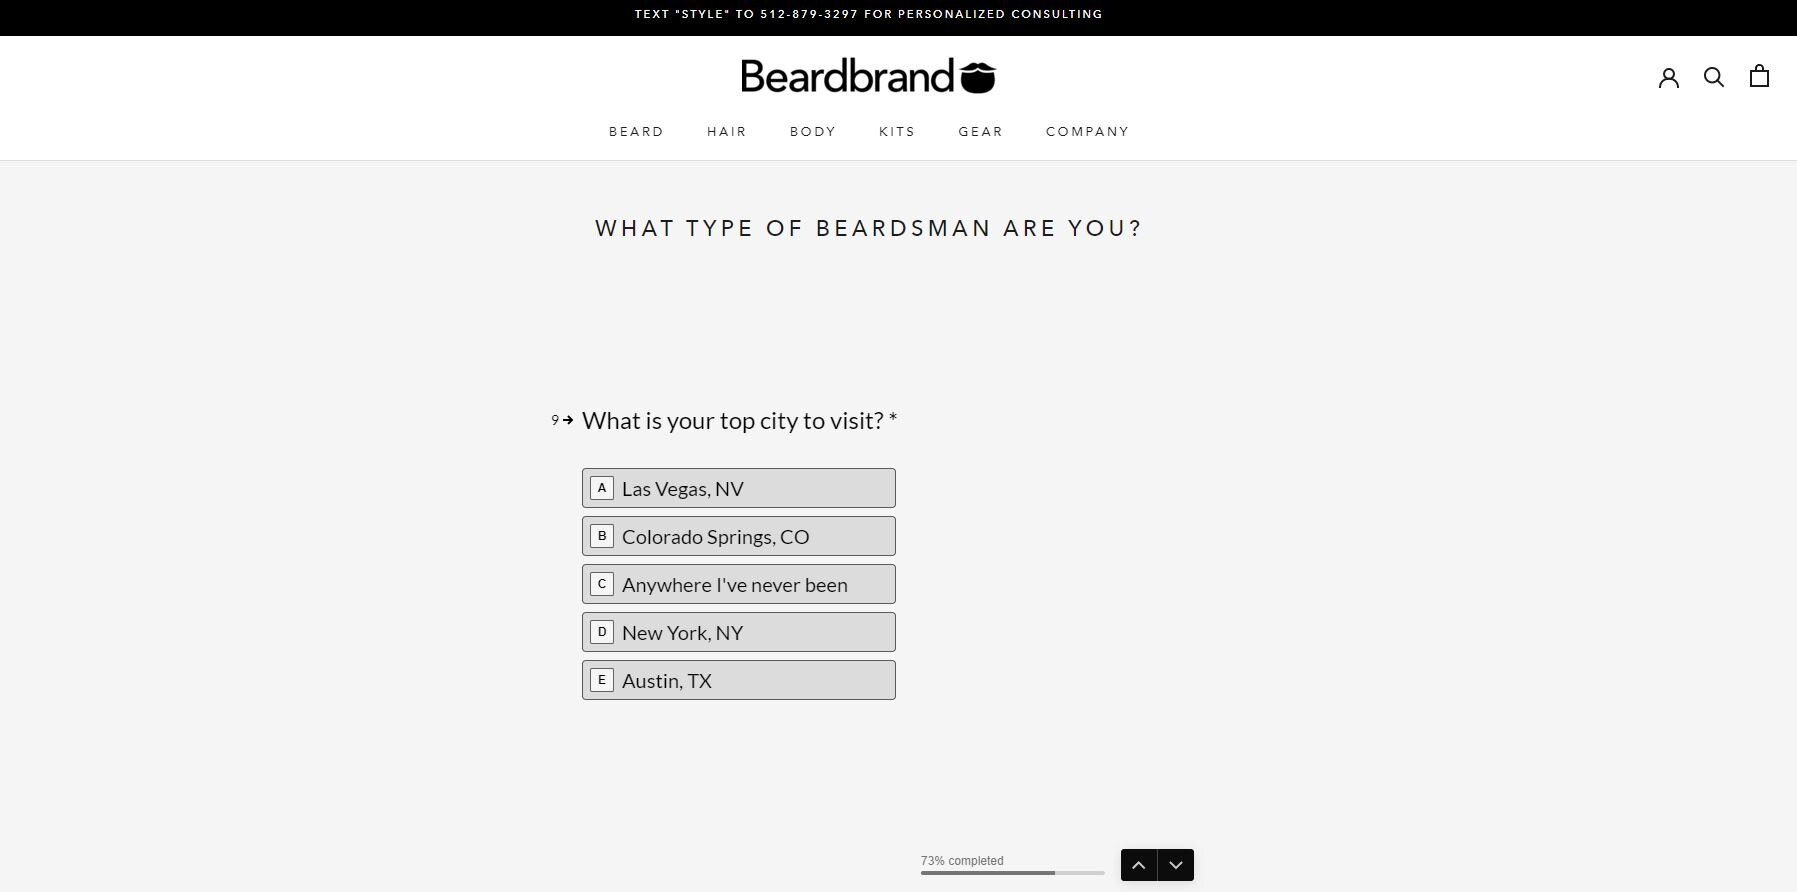 Beardbrand-Quiz-10.JPG